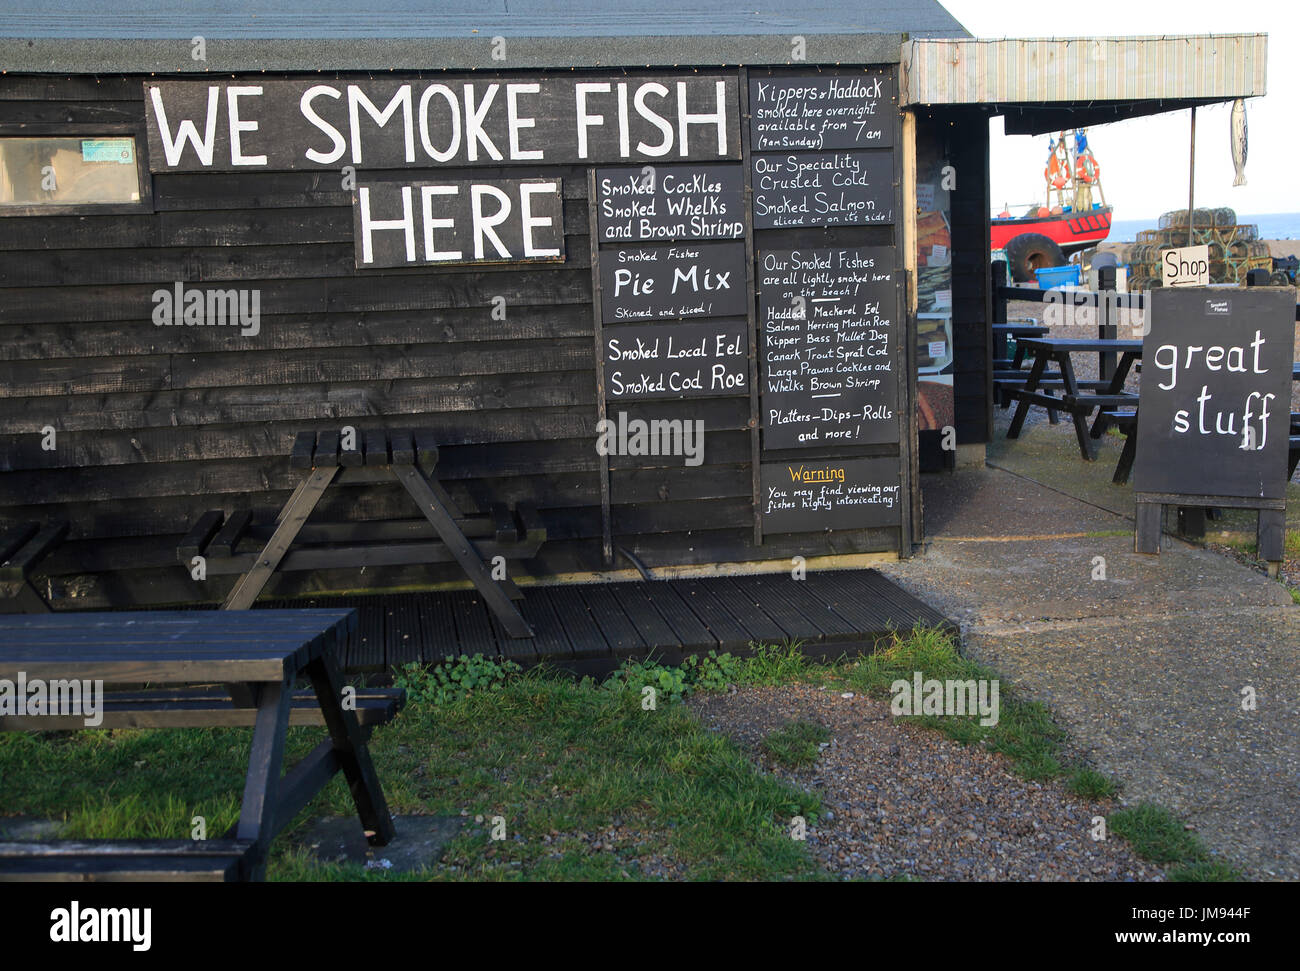 smoked fish shed stockfotos smoked fish shed bilder alamy. Black Bedroom Furniture Sets. Home Design Ideas